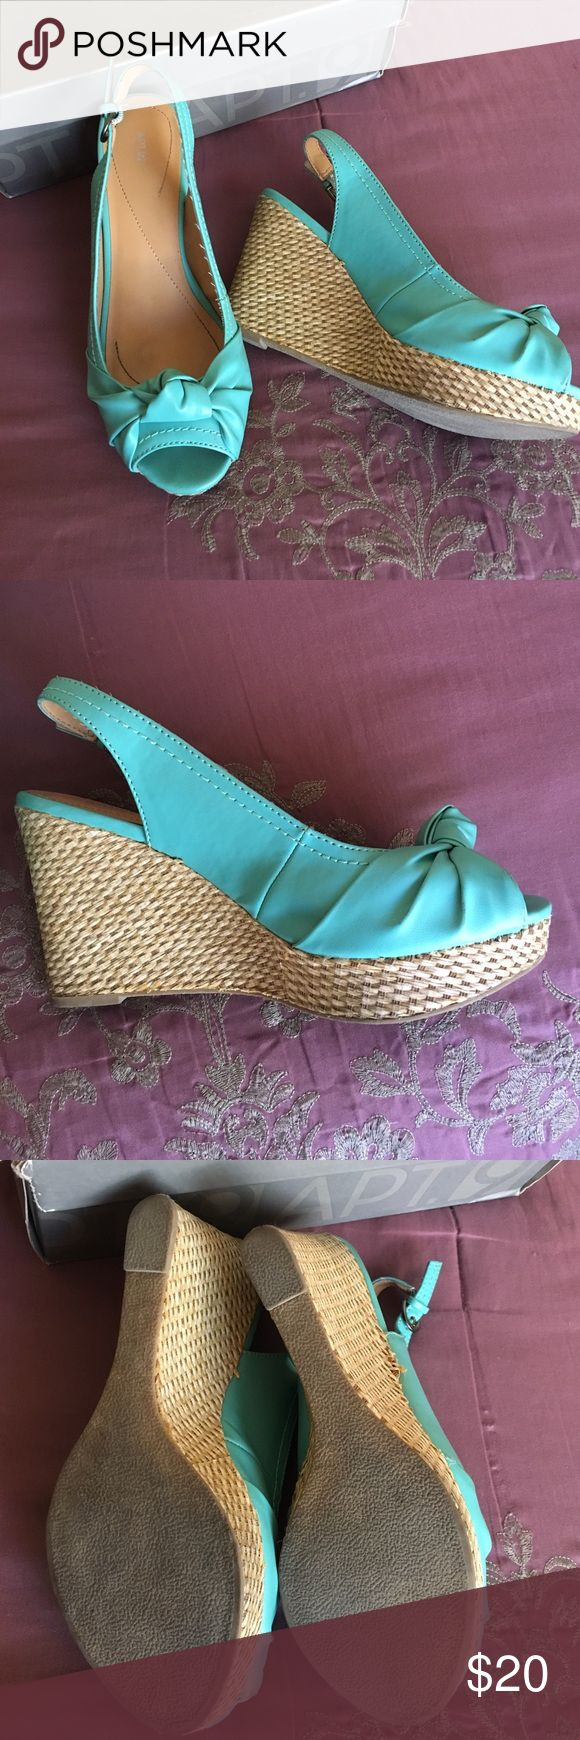 💙Beautiful Turquoise Wedges Turquoise faux leather and neutral toned natural material wedge. Gently used a couple of times. In good condition, in their box.  Great addition to your wardrobe for this Spring/Summer 💙 Apt. 9 Shoes Wedges